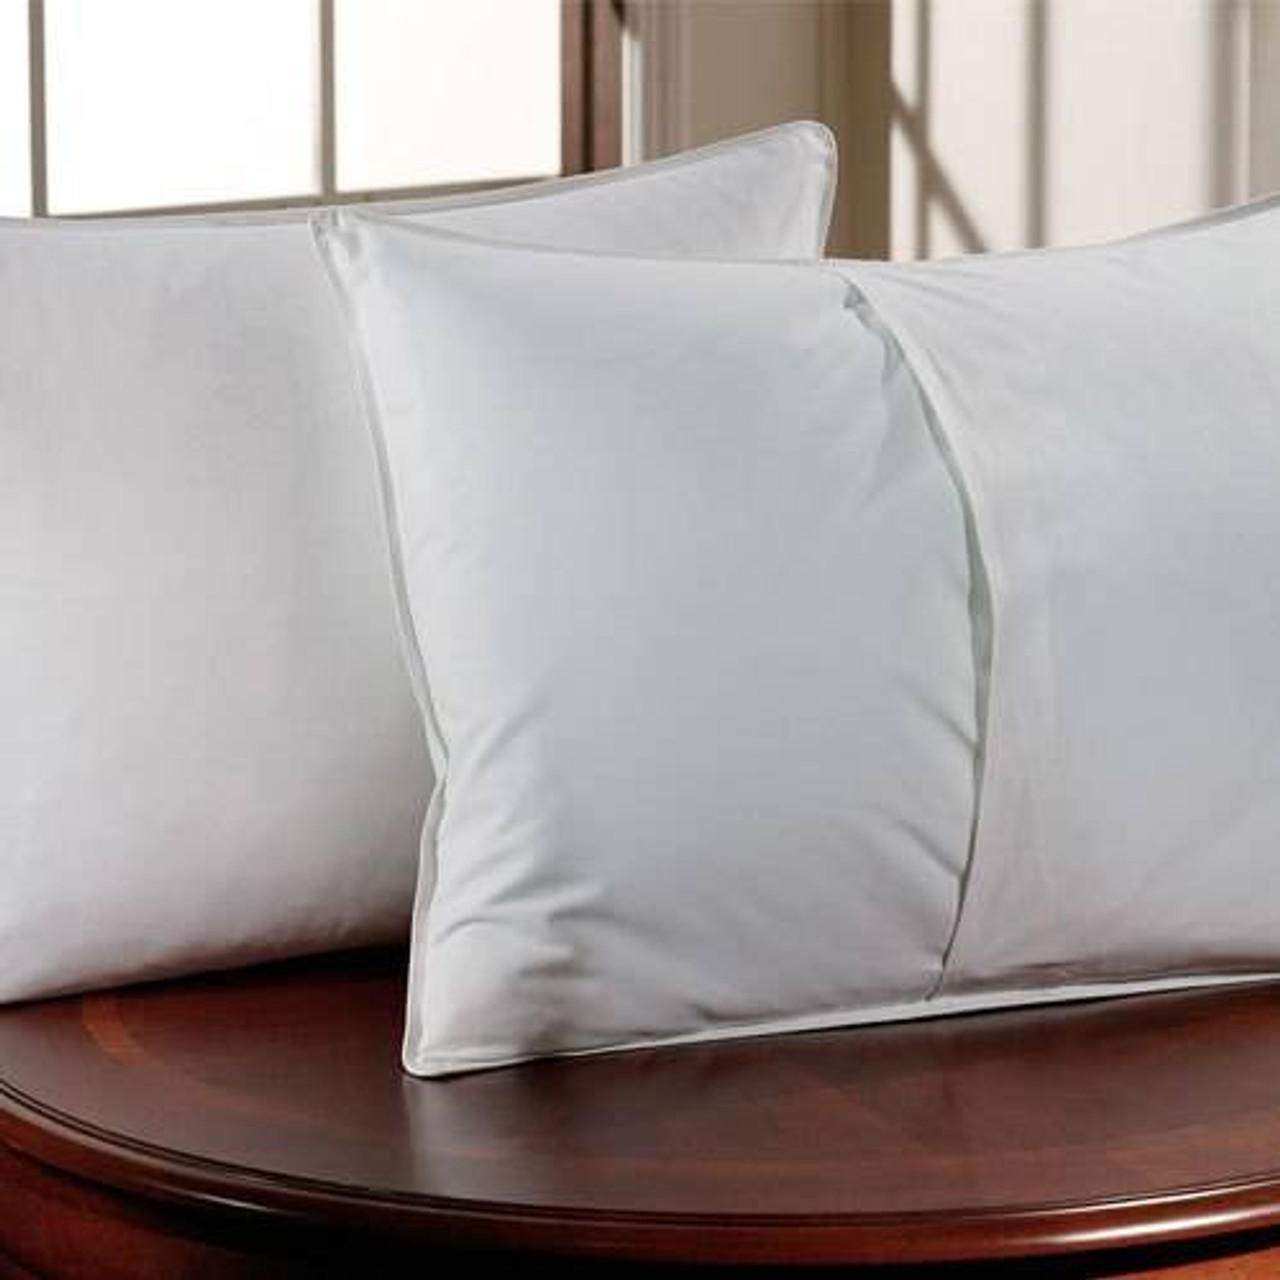 DownLite Bedding DownLite Pillow Protector or Envelope Closure